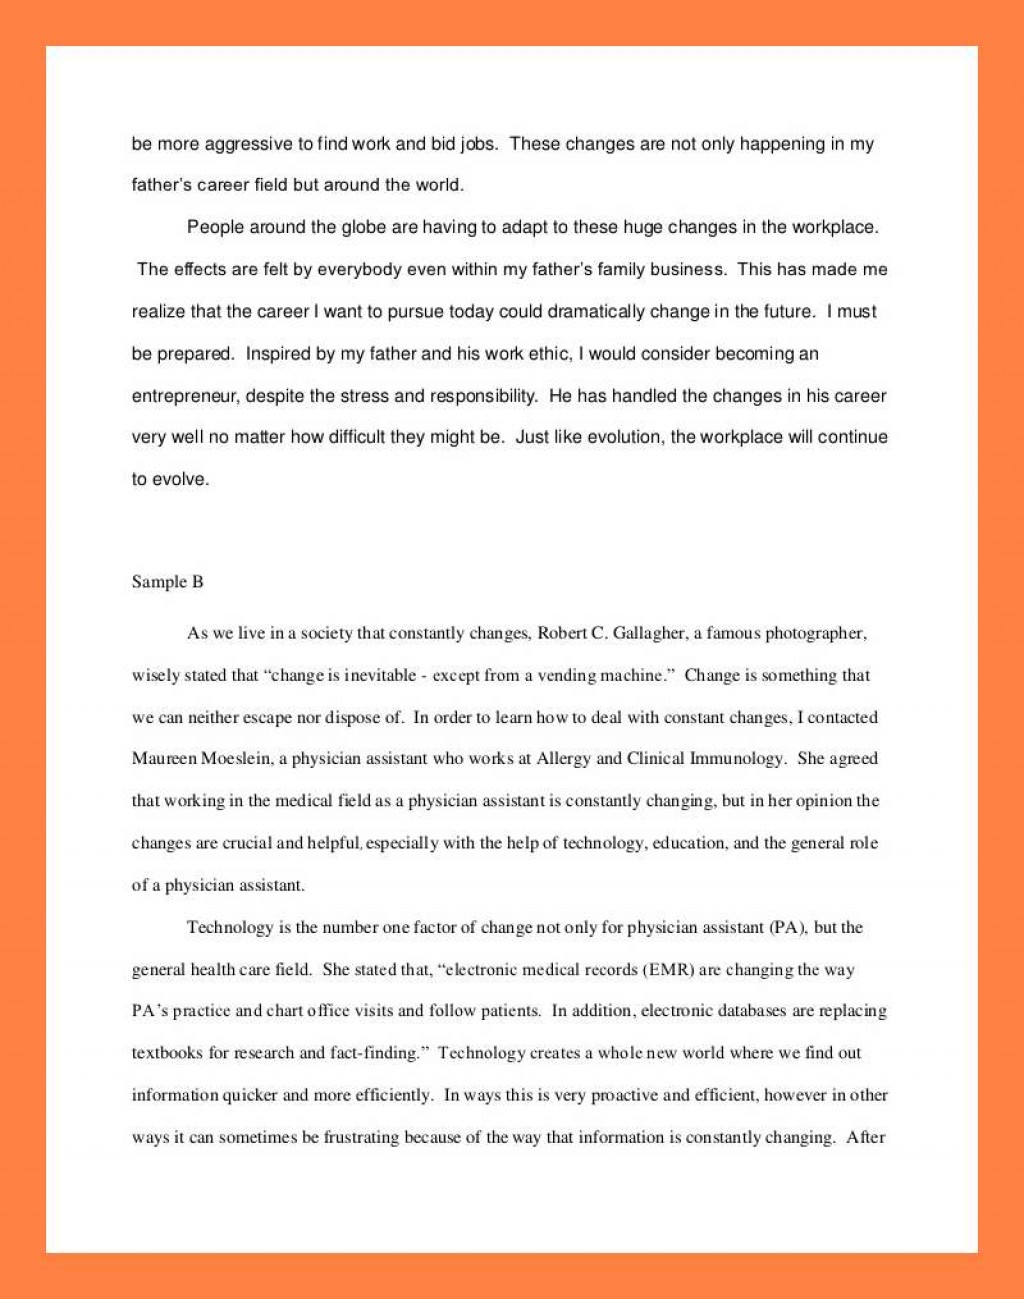 007 Interview Essay Examples Of Student Reflections Example Formidable Free Sample Large